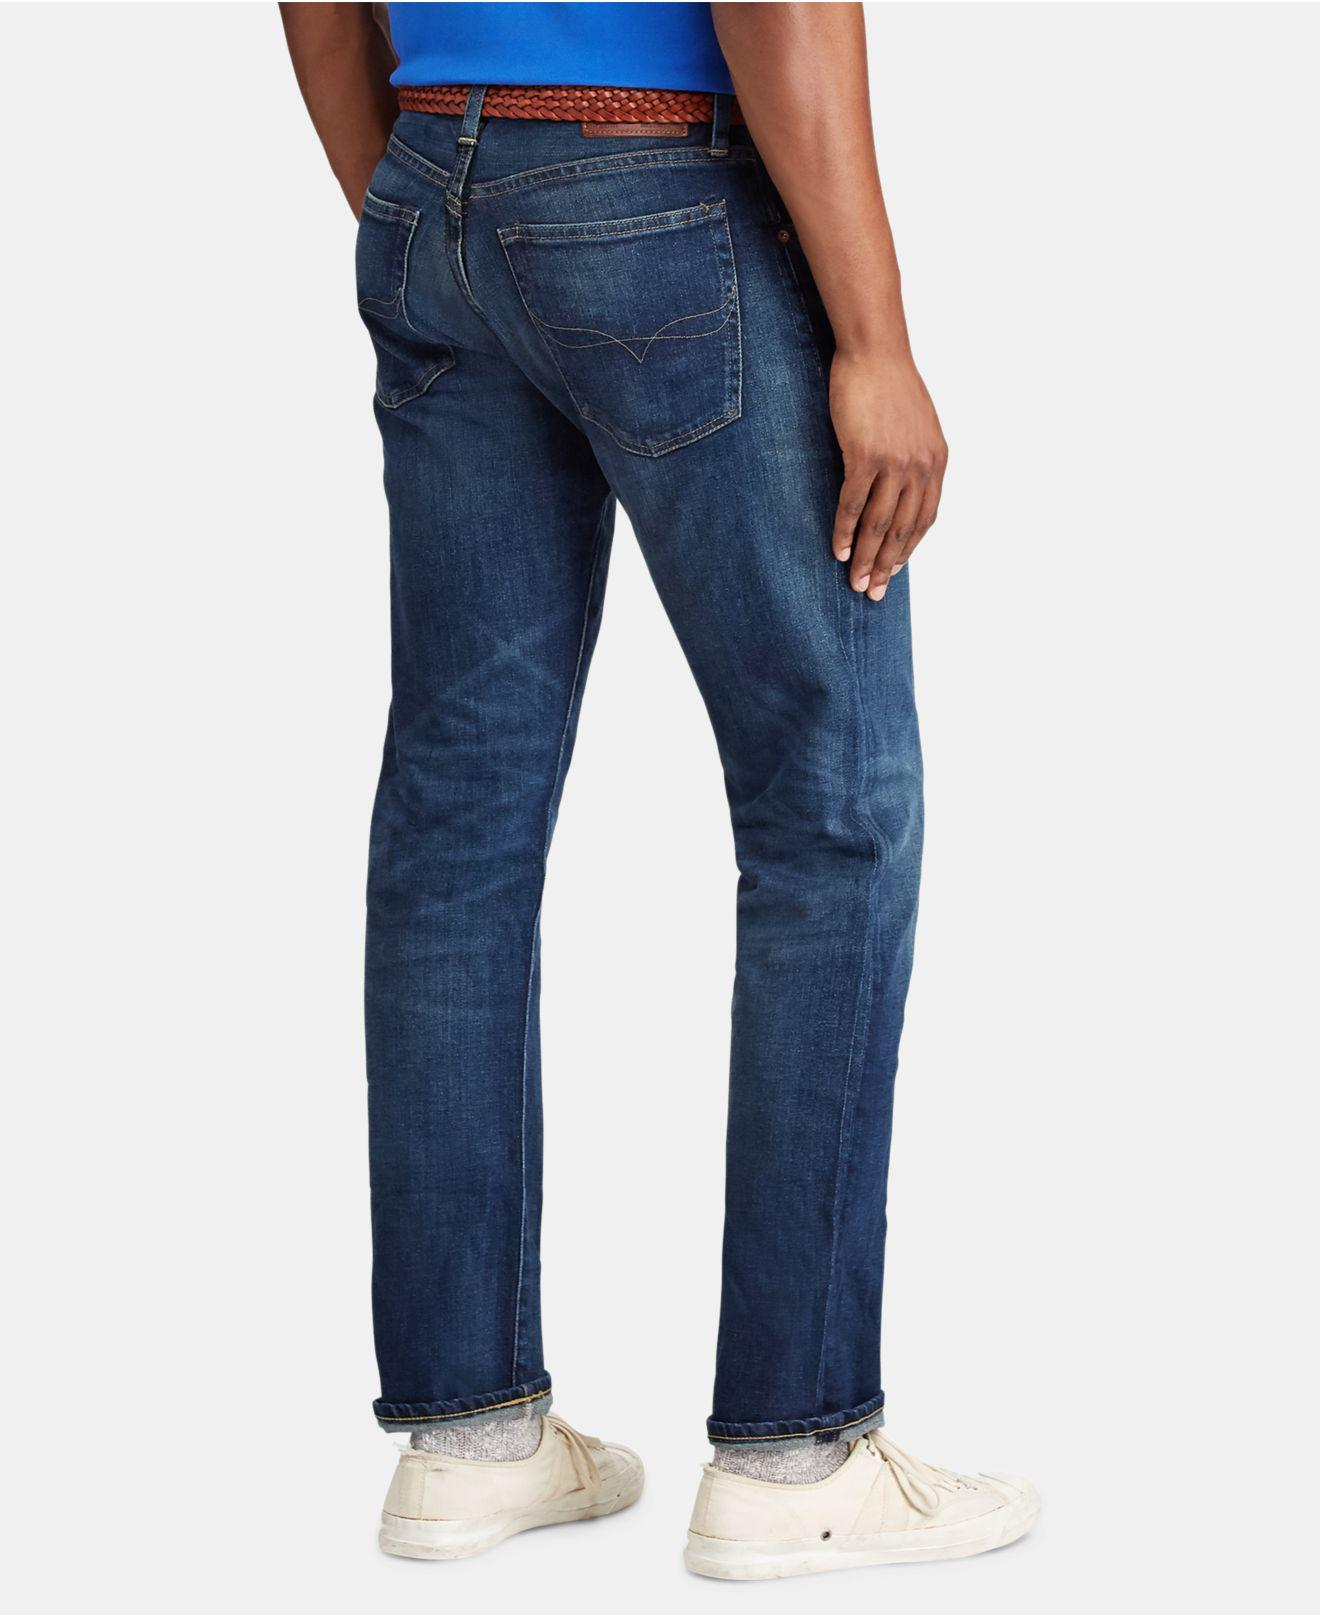 fd8bff630 Polo Ralph Lauren Hampton Relaxed Straight Jeans in Blue for Men - Lyst